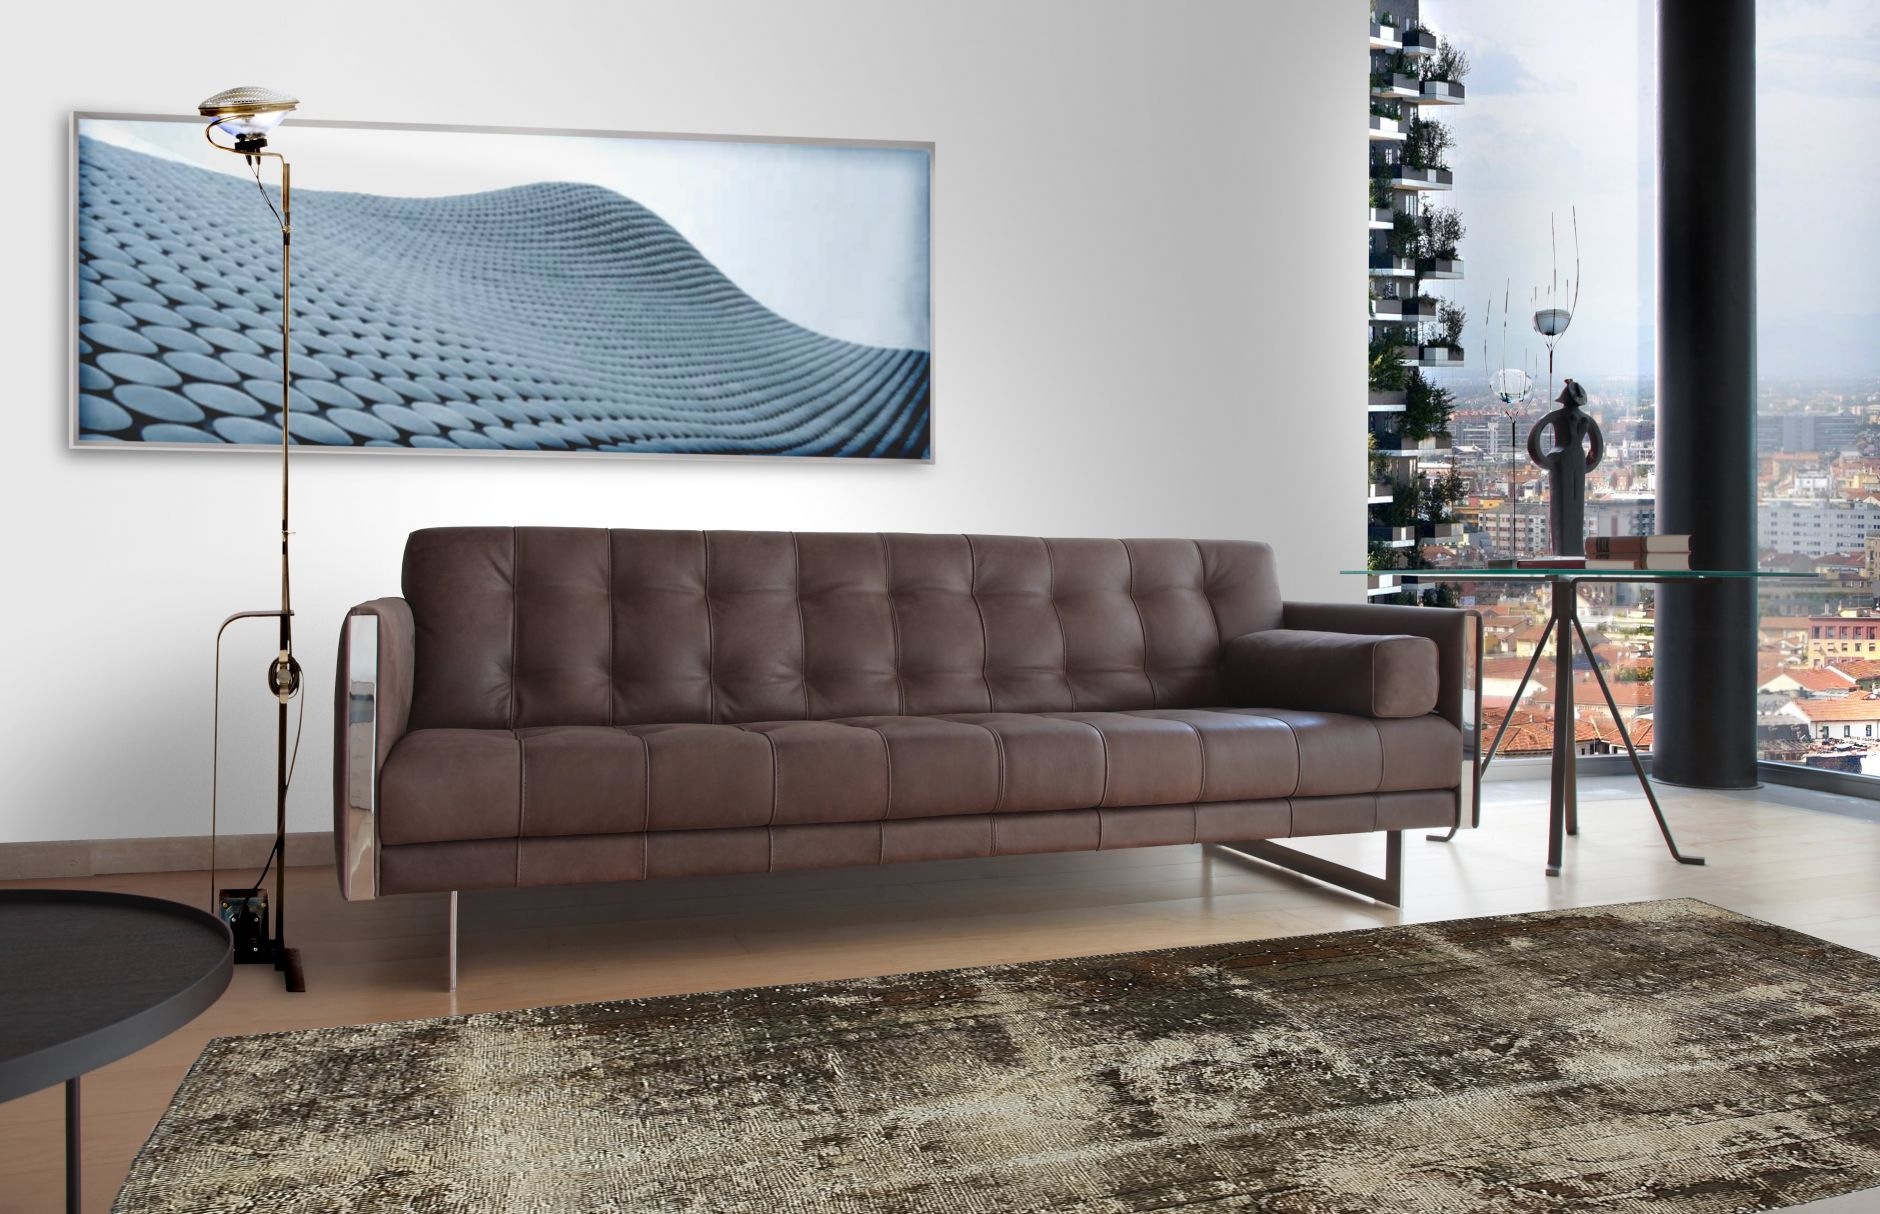 italian sofas upholstered furniture calia italia juliet 814 seriesfurniture from italy. Black Bedroom Furniture Sets. Home Design Ideas